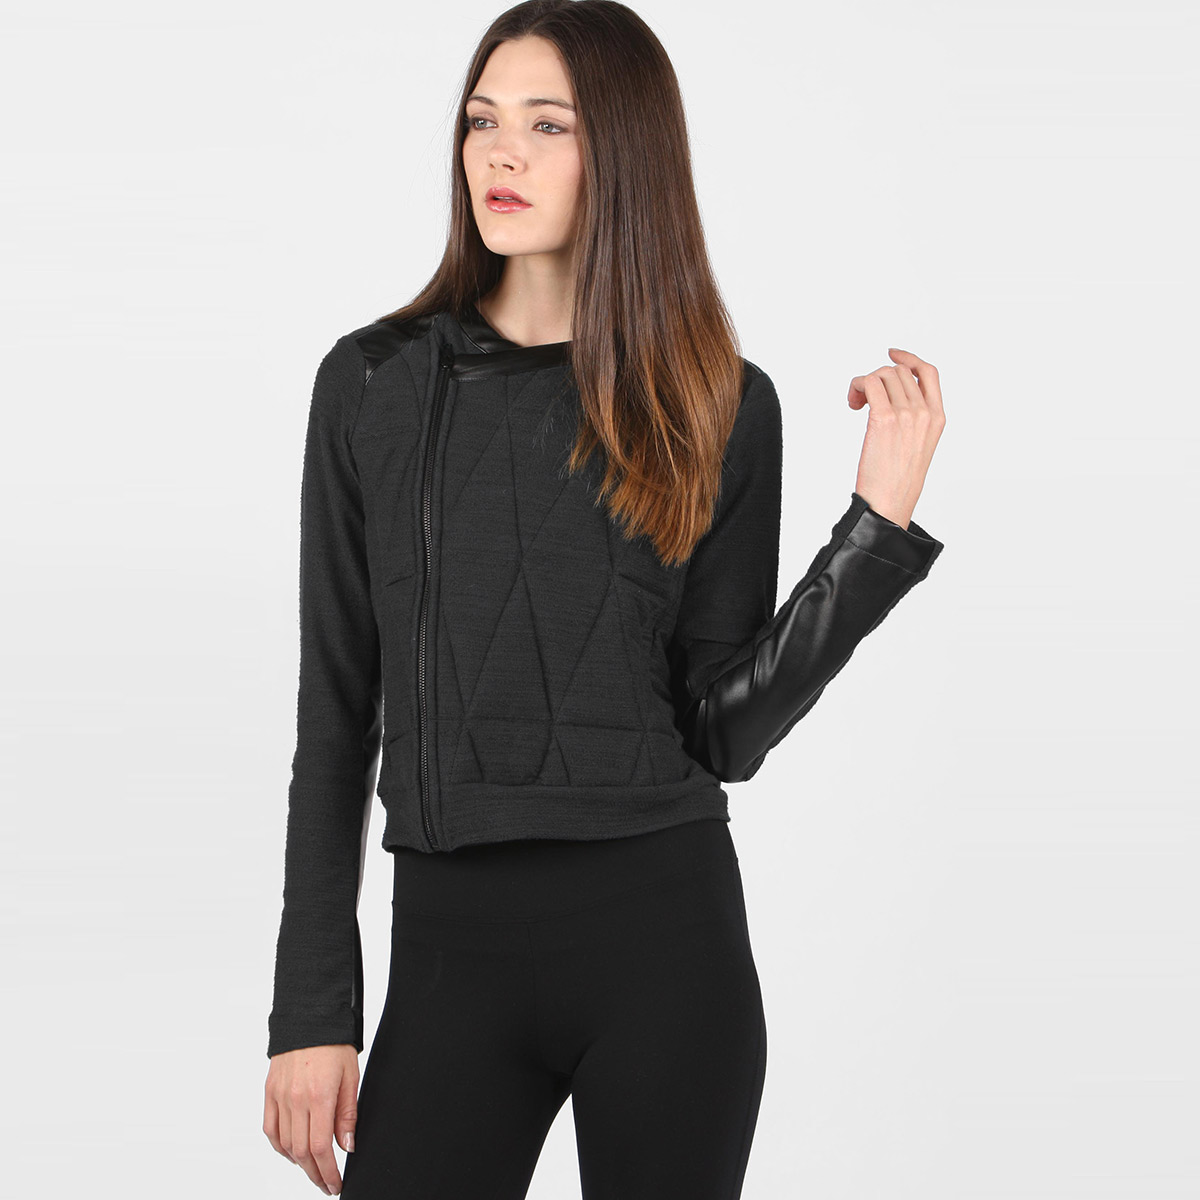 Solow Quilted Moto Jacket Womens Apparel at Vickerey : quilted moto jacket - Adamdwight.com